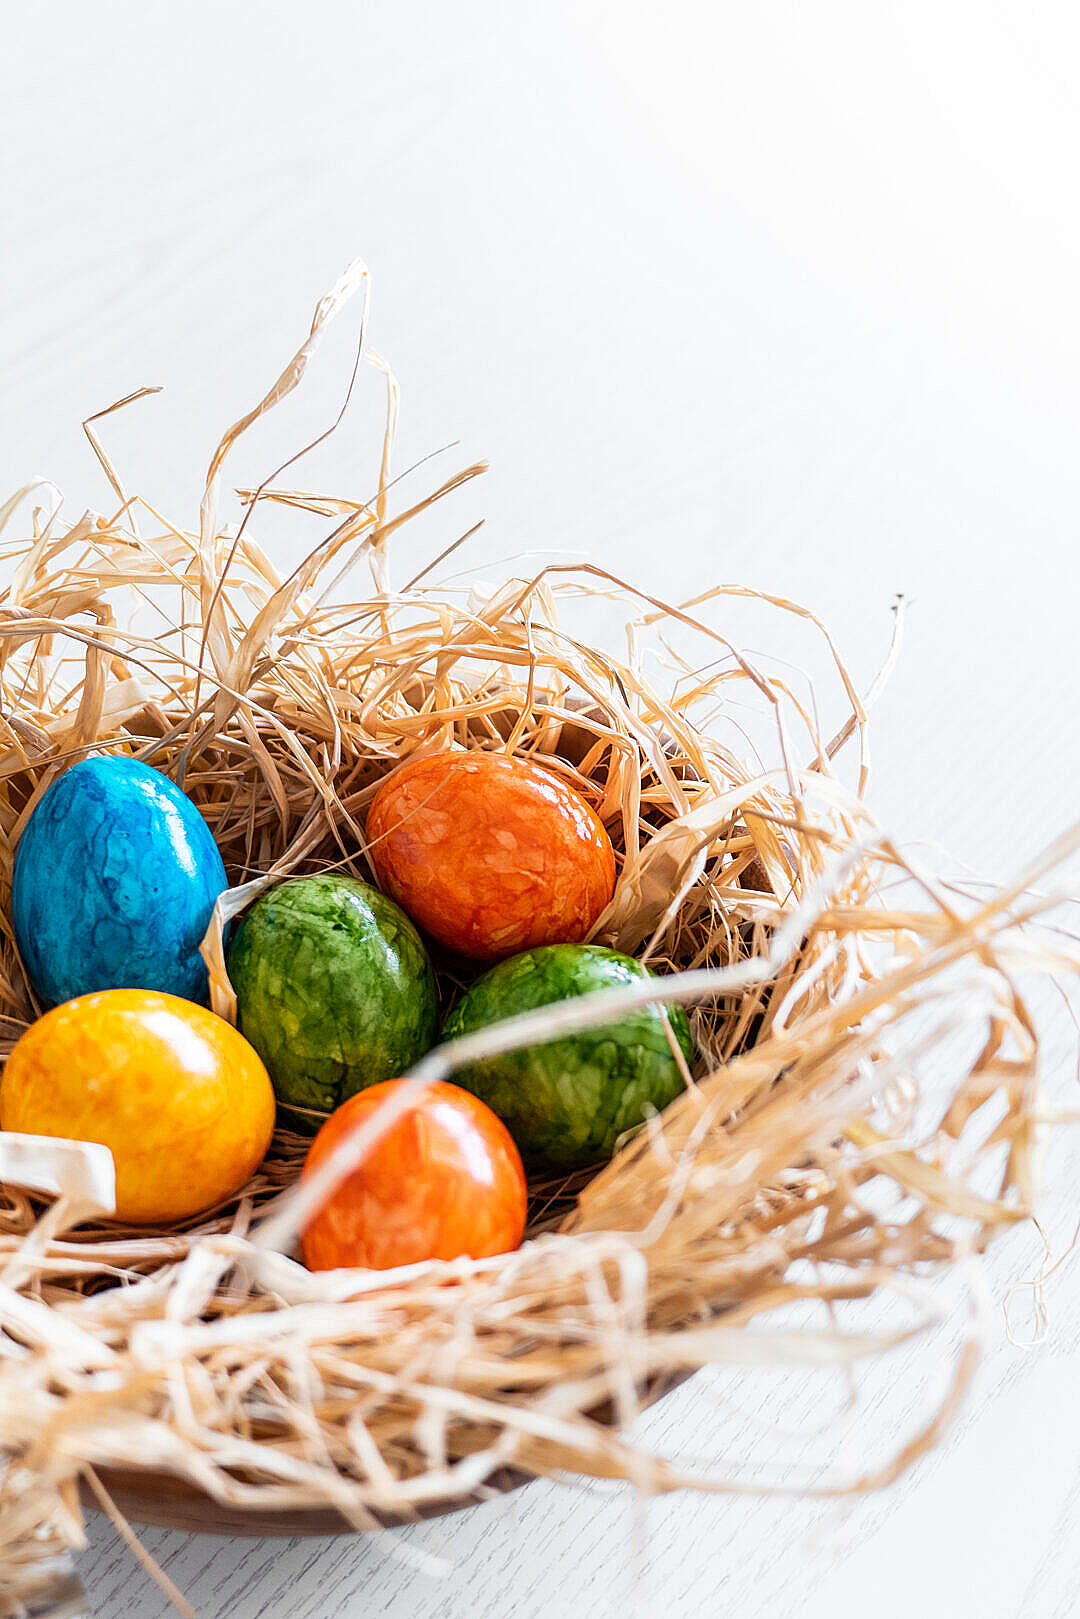 Download Vertical Colored Easter Eggs FREE Stock Photo